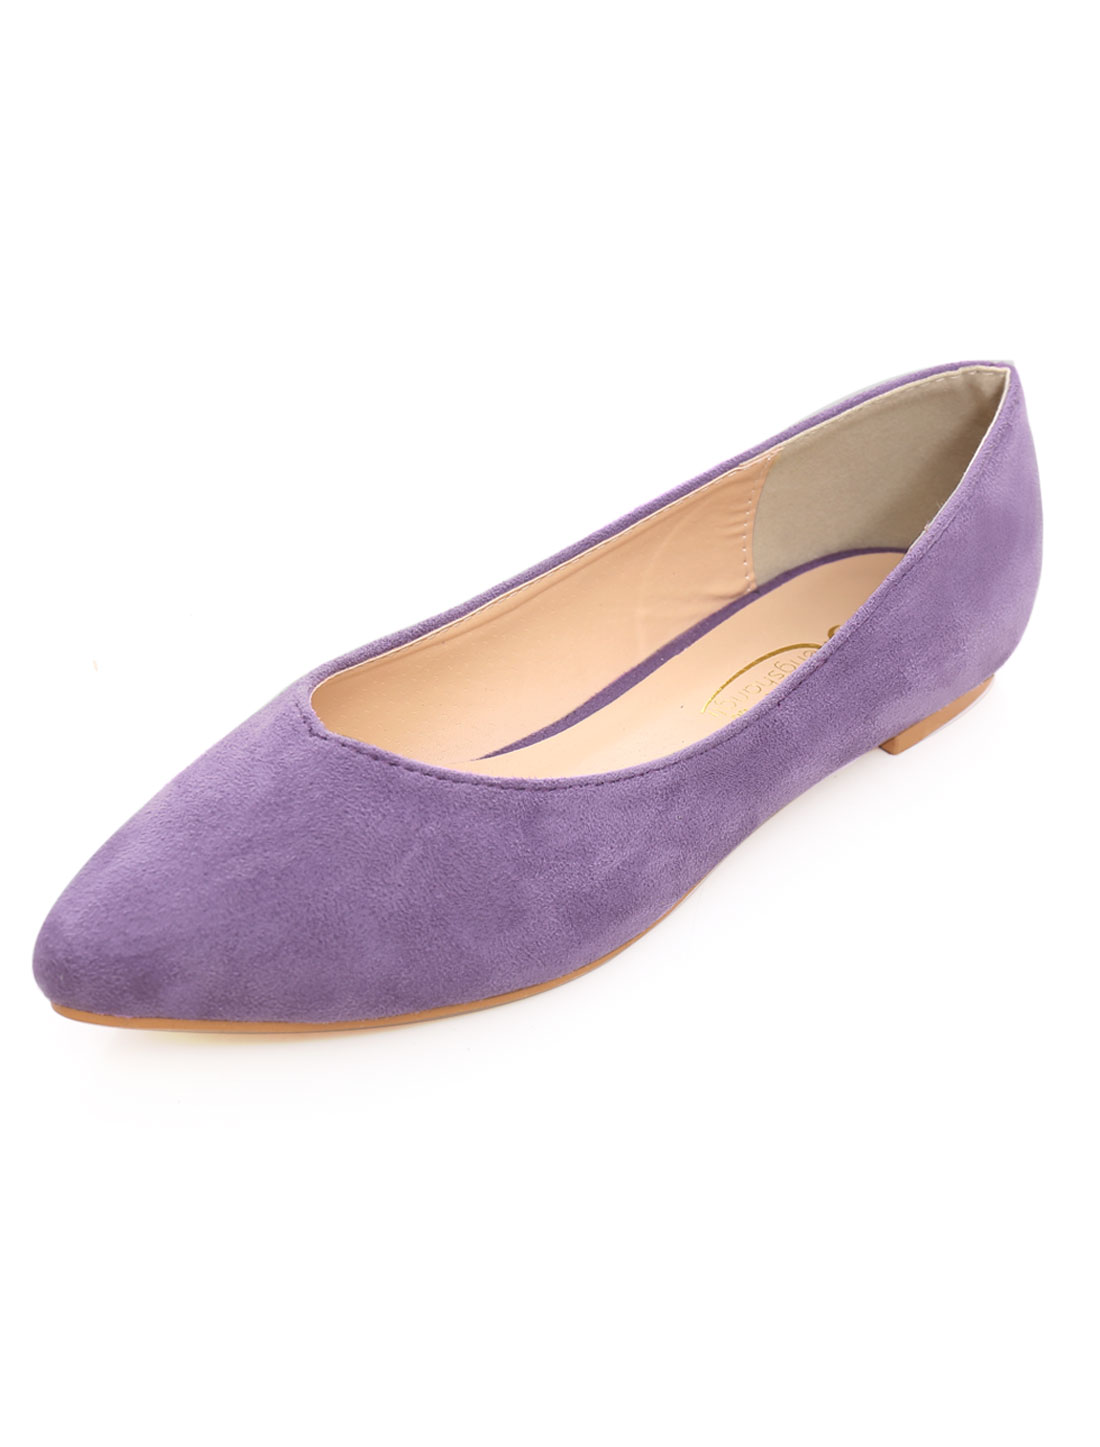 Woman Faux Suede V-Cut Vamp Pointed Slip On Ballet Flat Purple US 10